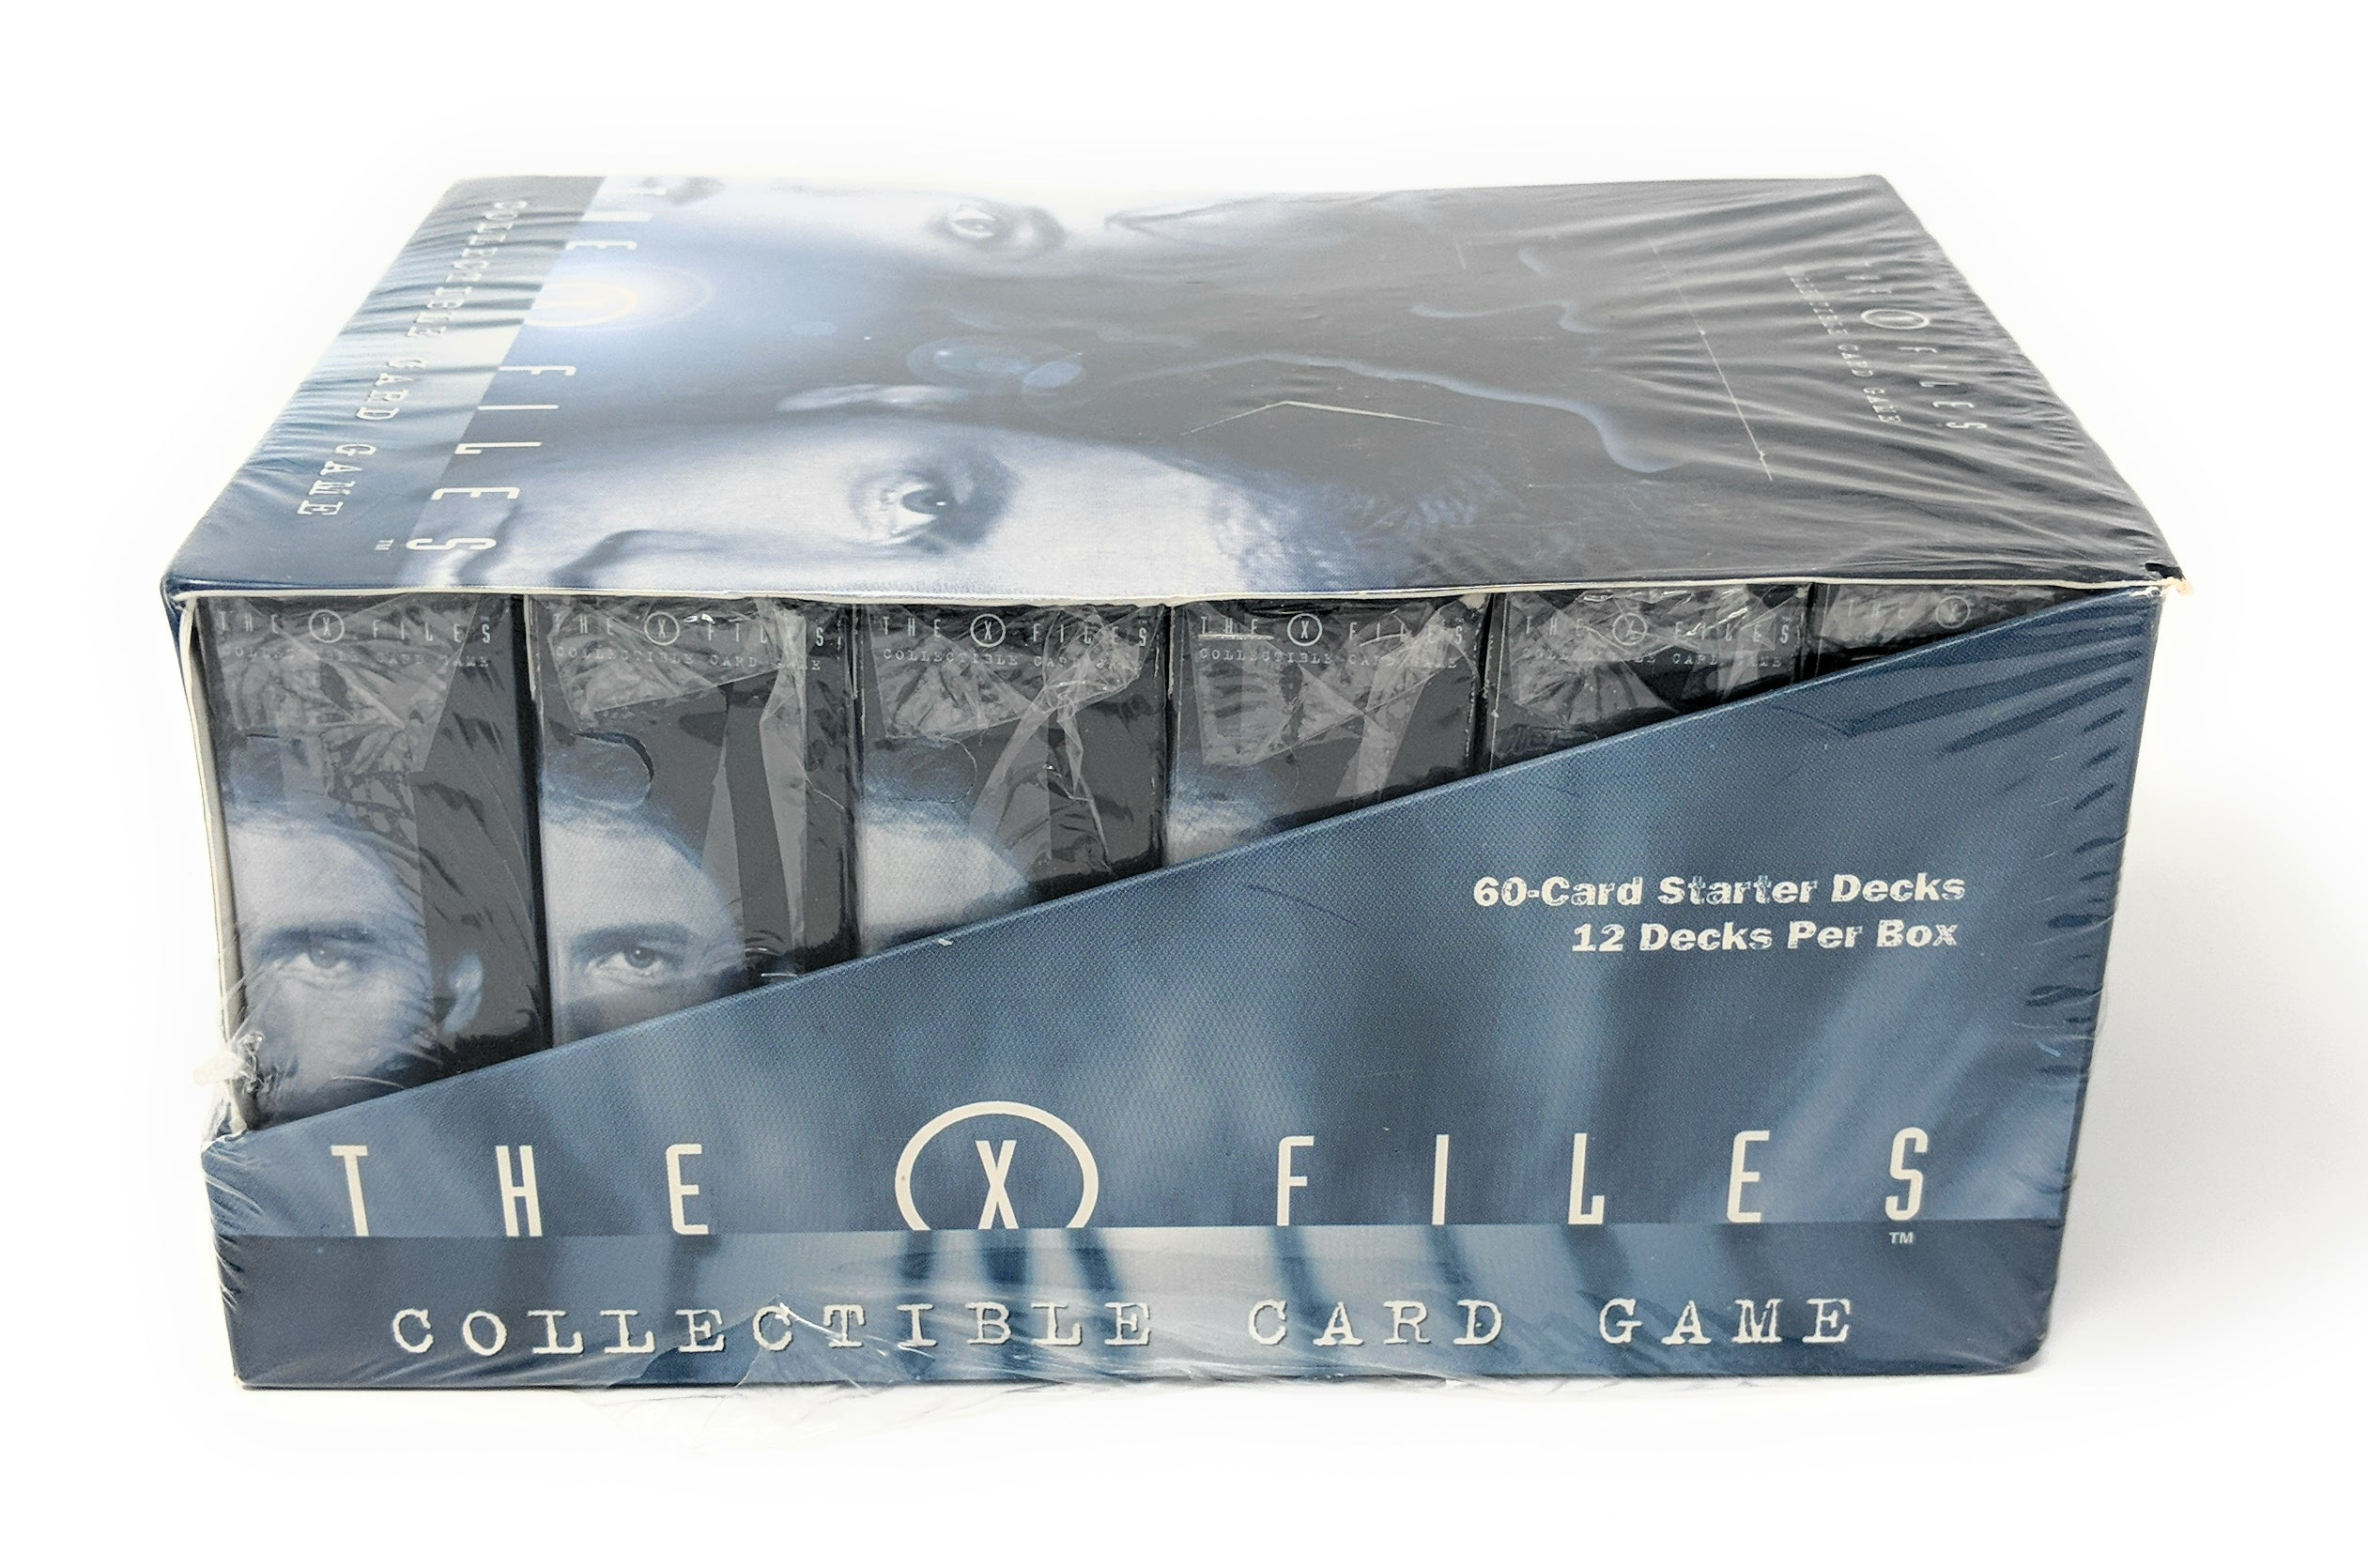 X Files Starter Deck Box (12 Decks) The Truth is out There Collectible Card Game